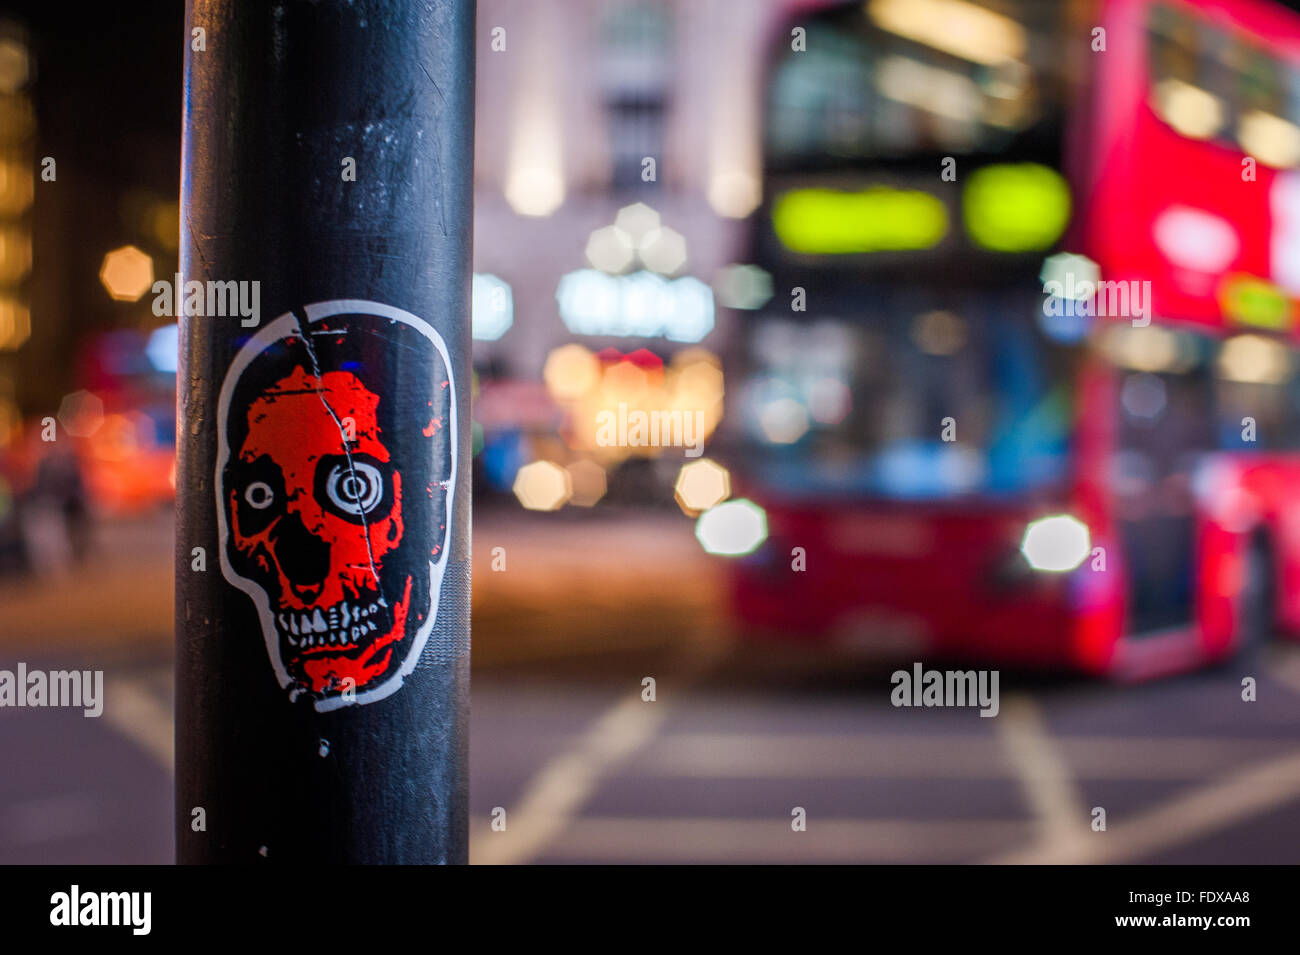 Eerie skull sticker on pole at night in Central London - Stock Image